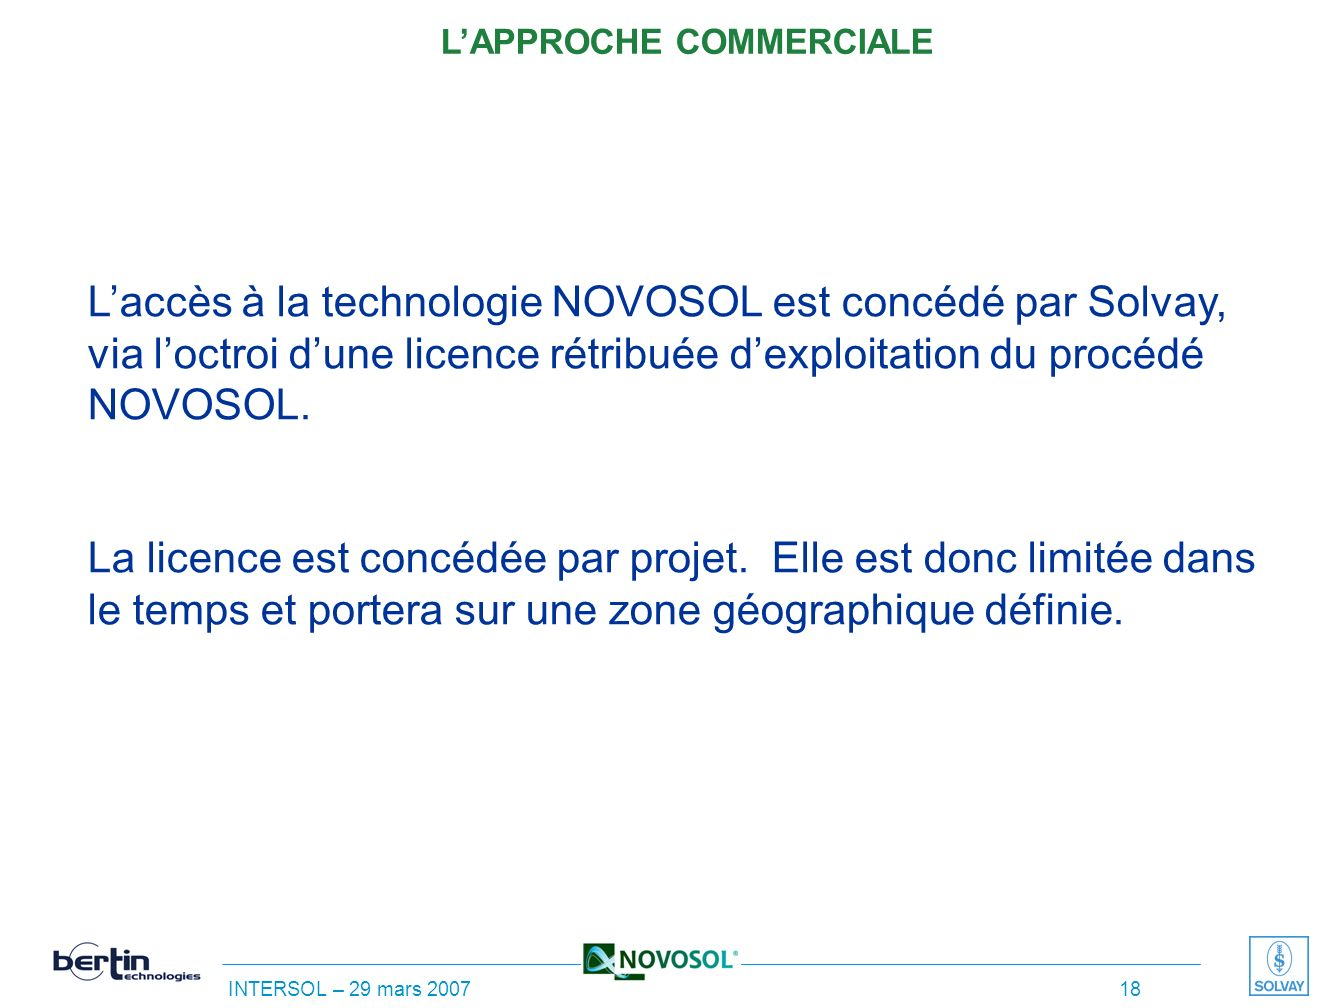 L'APPROCHE COMMERCIALE